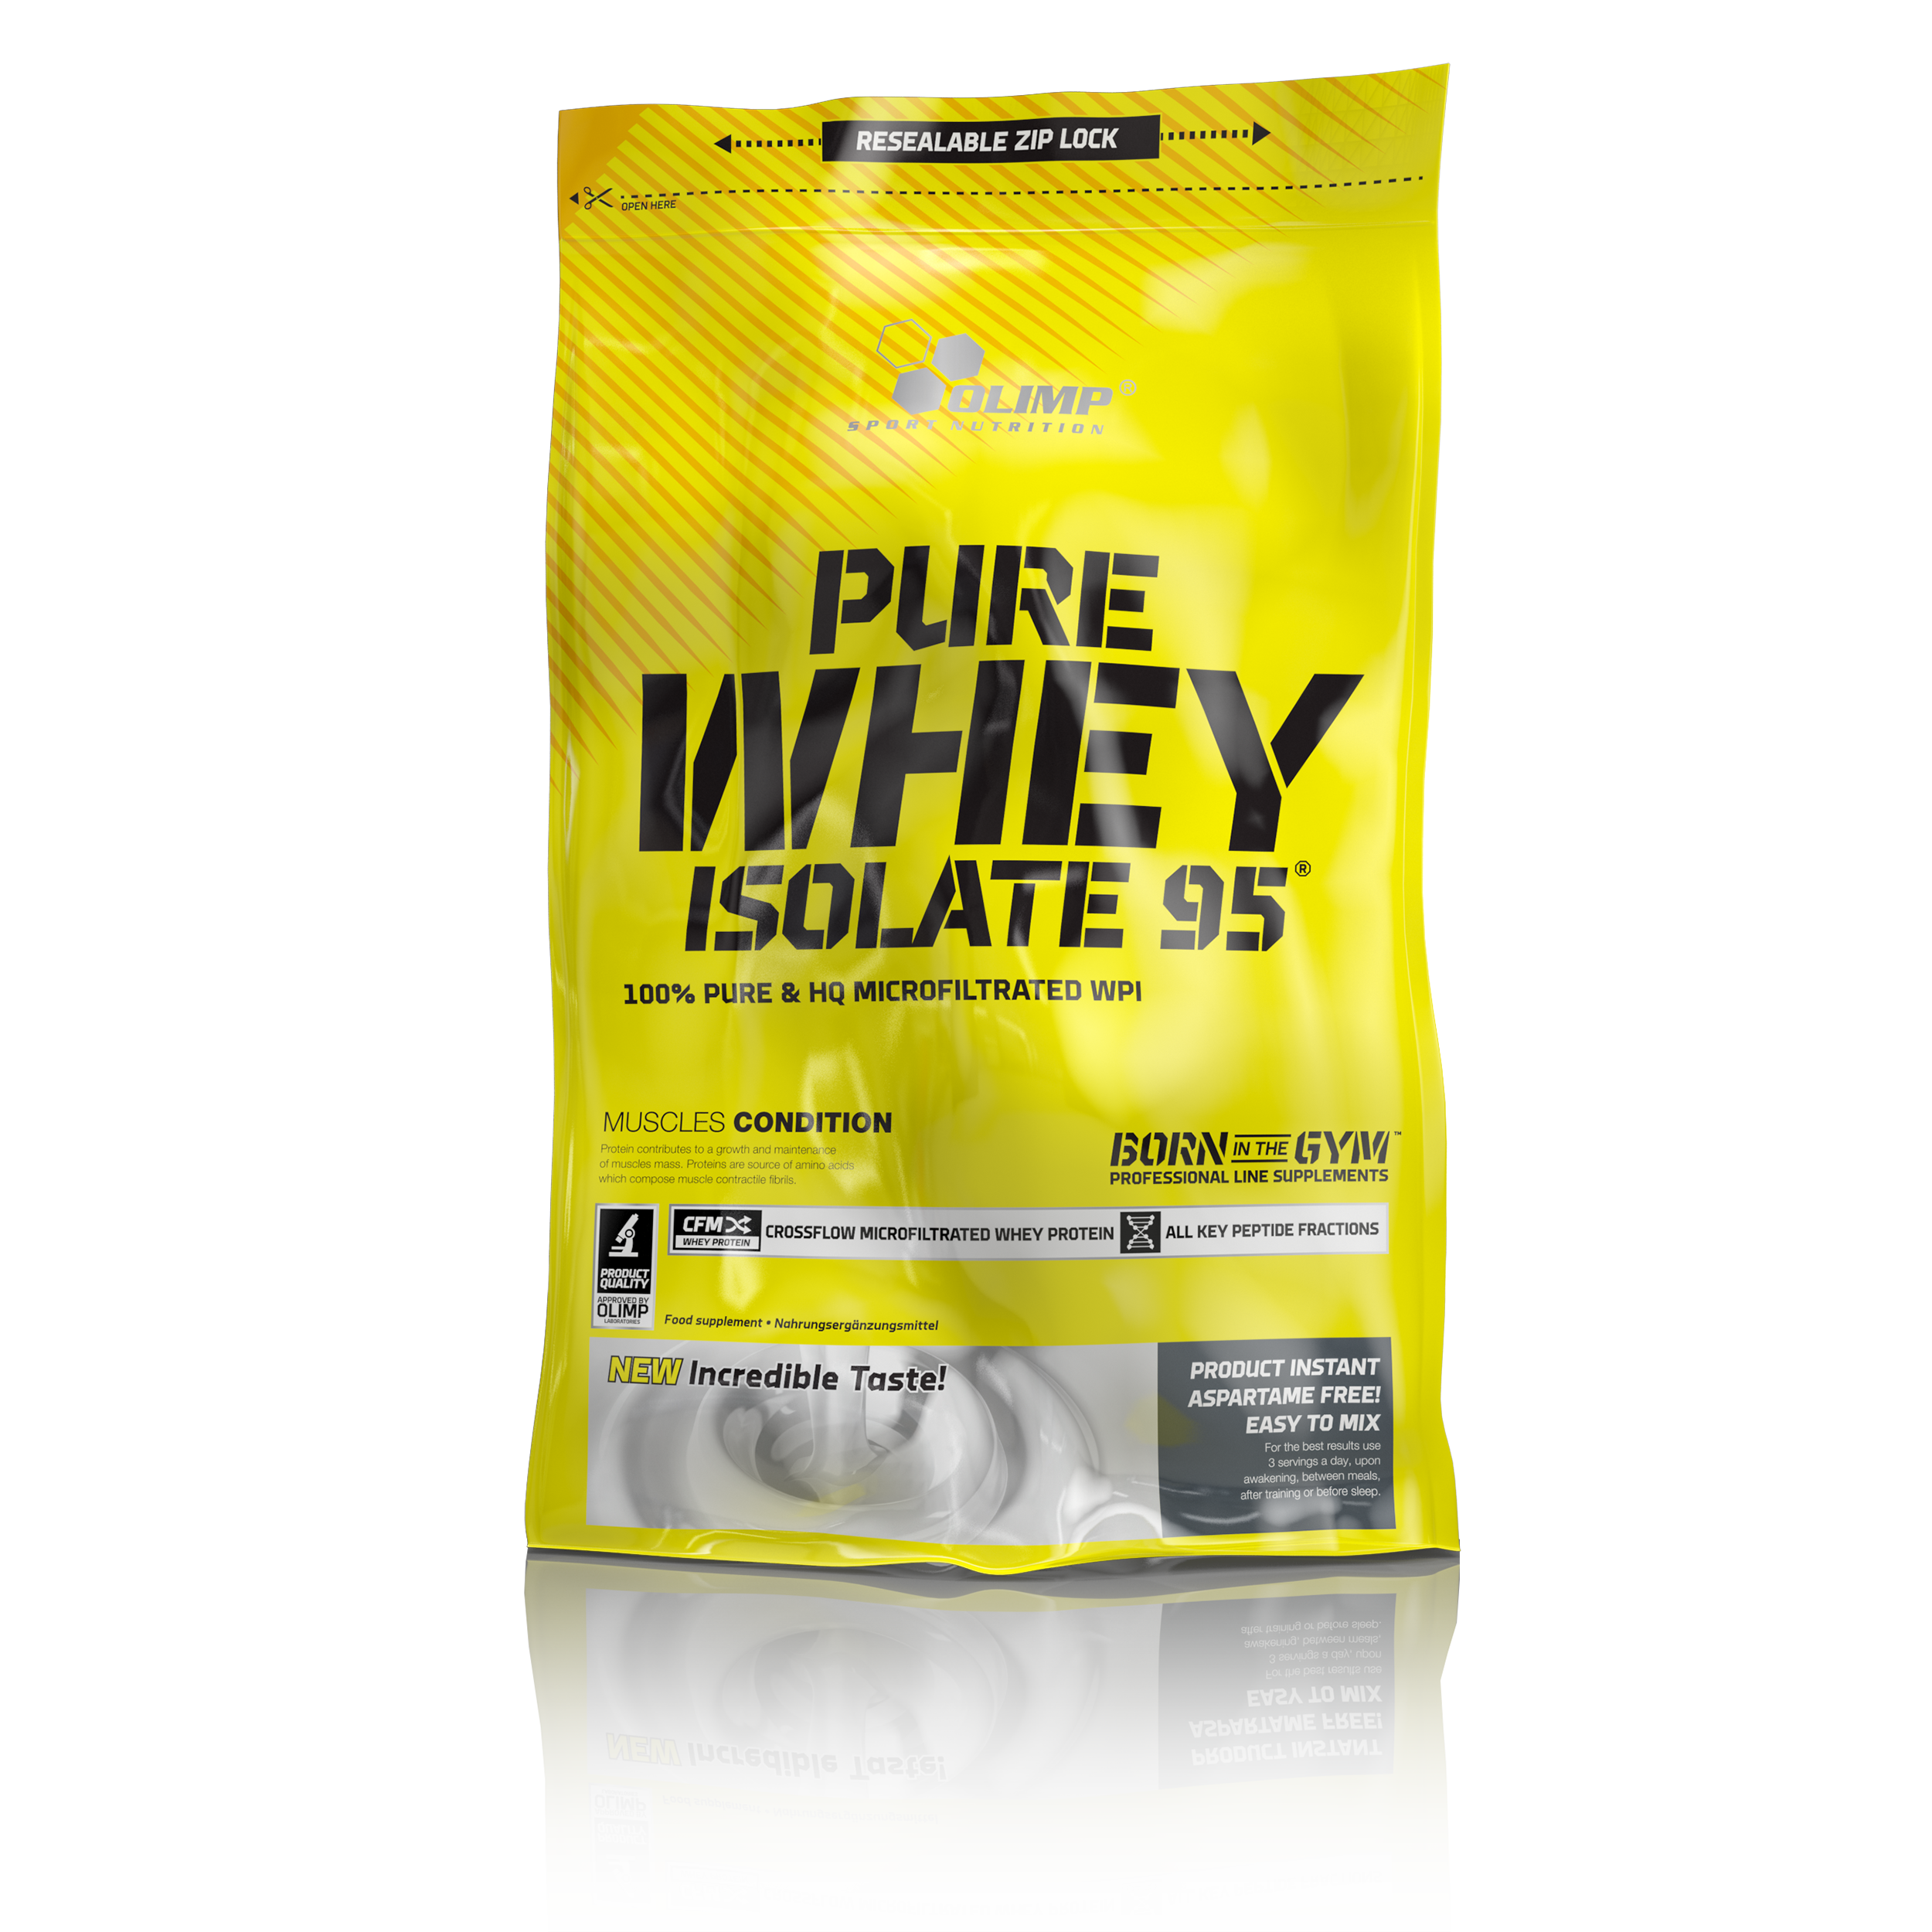 Pure Whey Isolate 95, 600 g, Olimp, Cherry jogurt